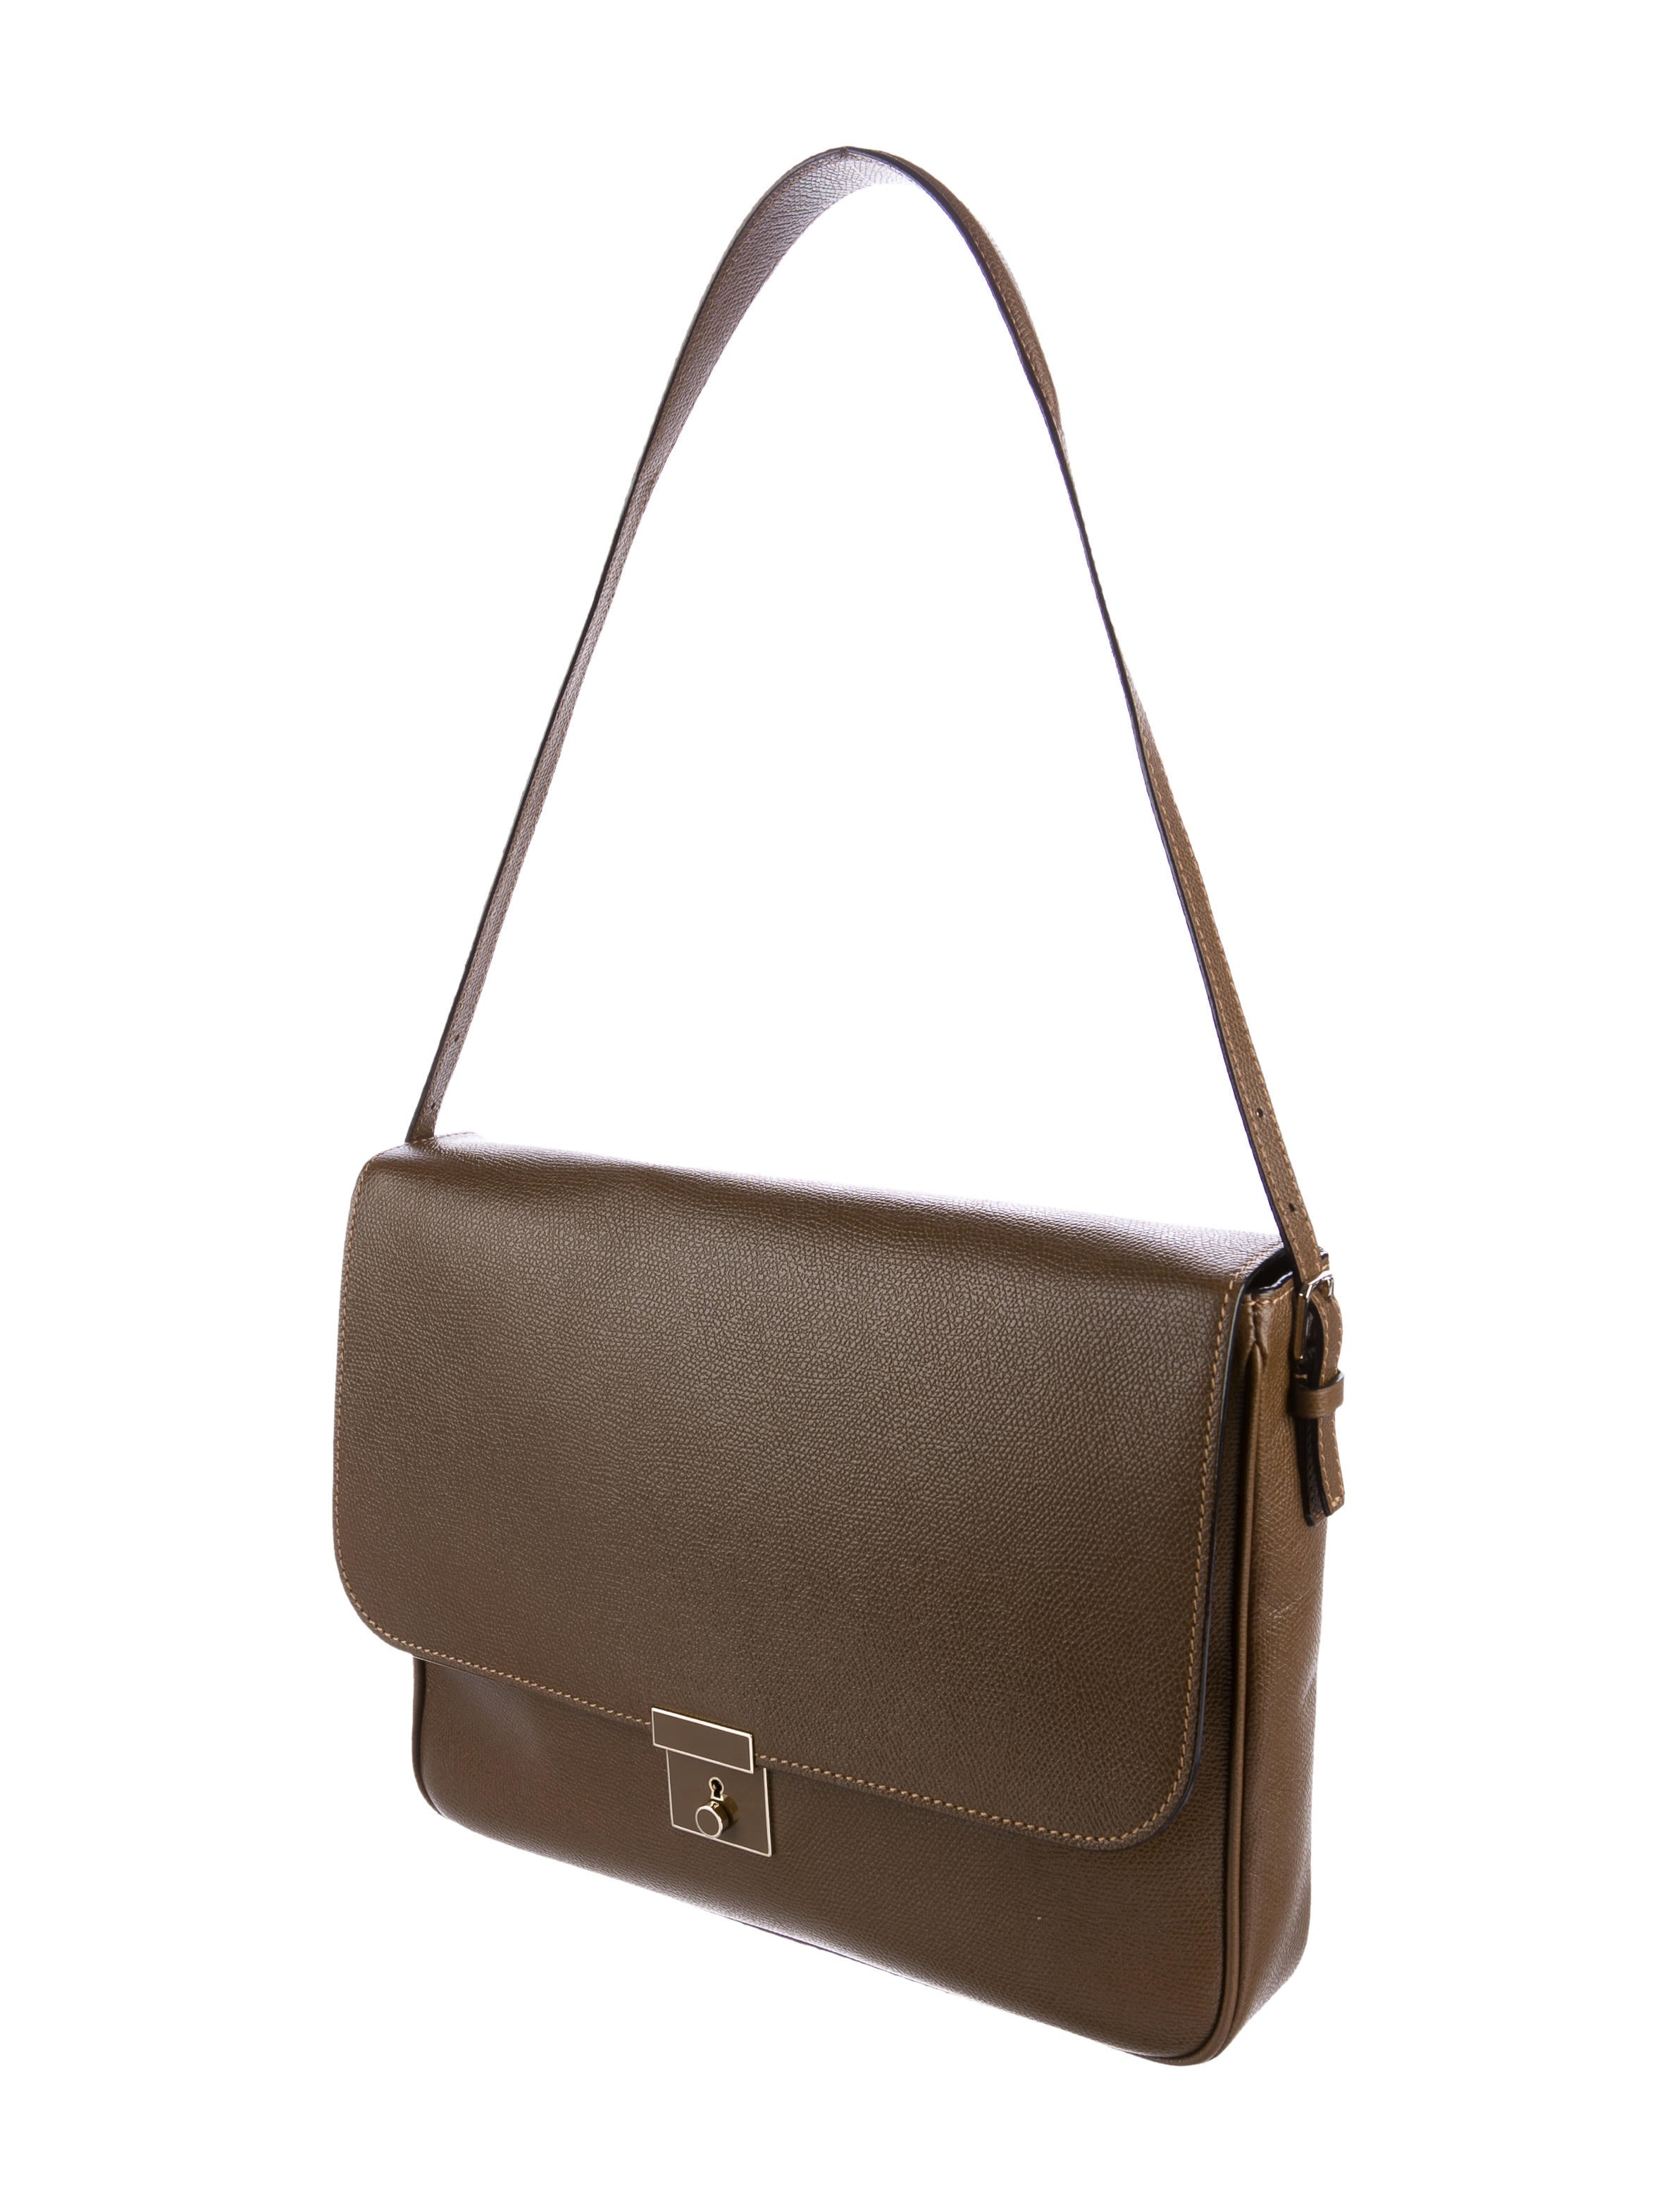 Valextra Leather Shoulder Bag - Handbags